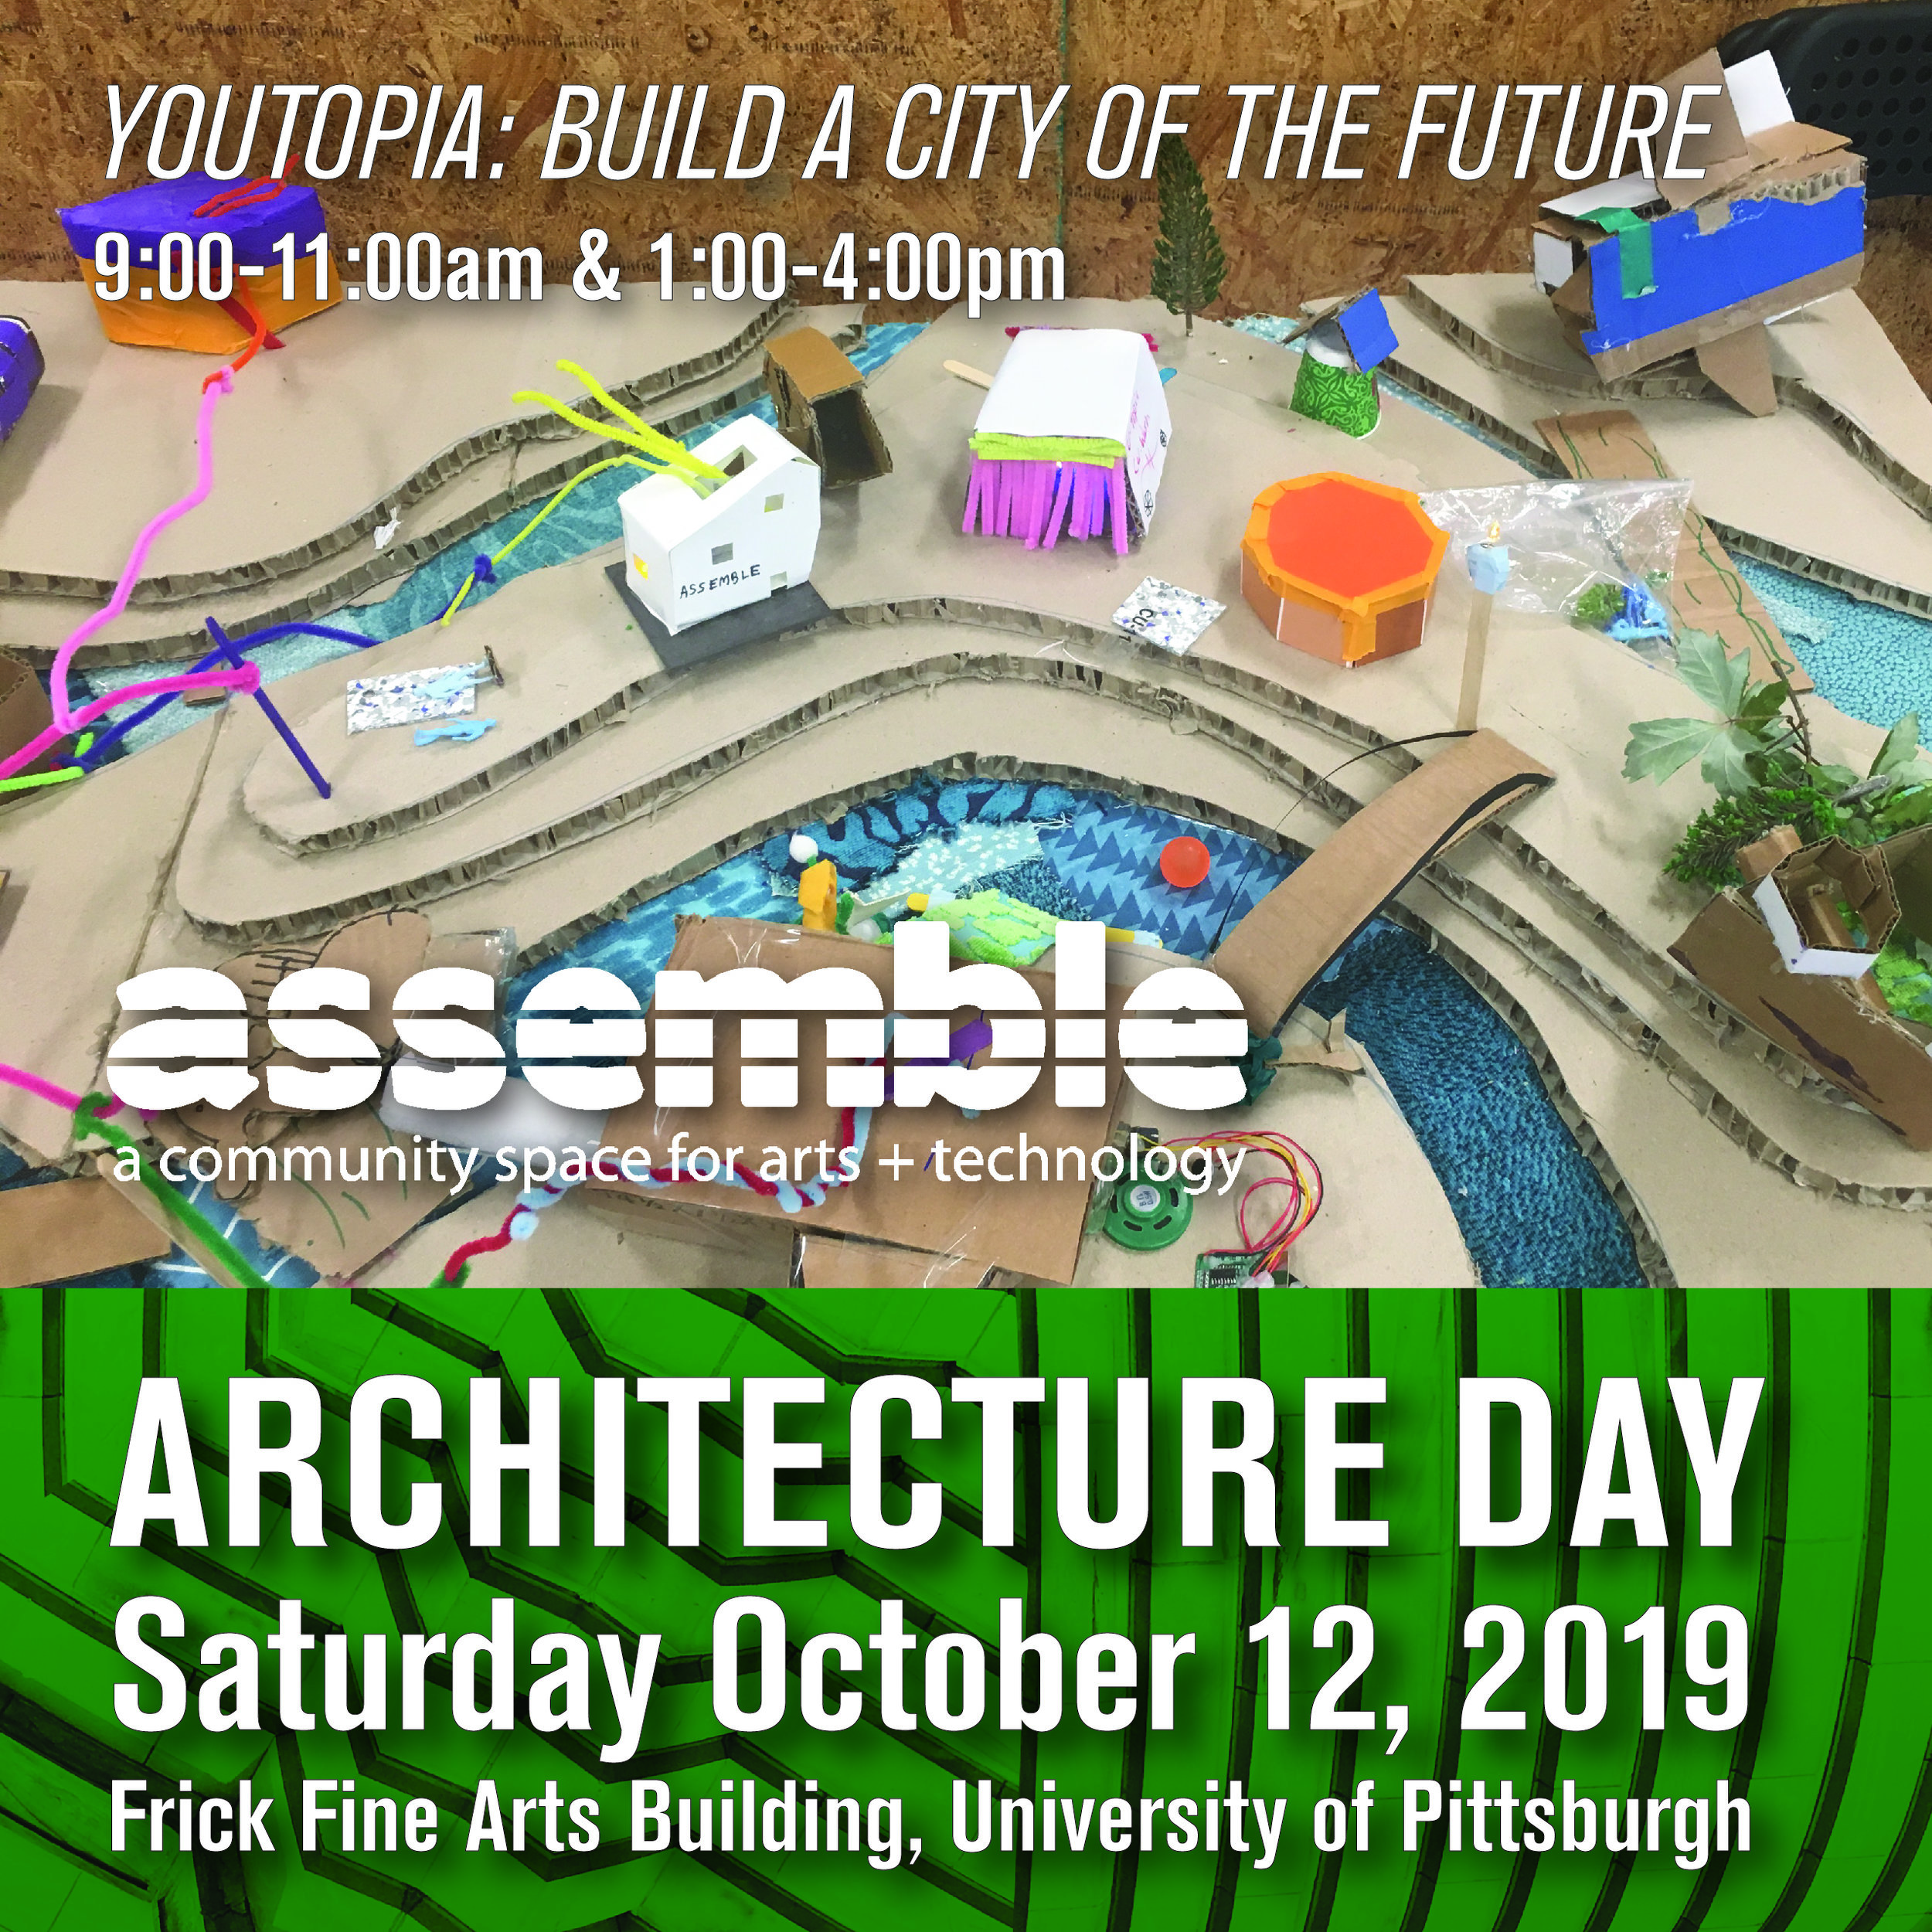 YouTopia with Assemble, 9:00-11:00am, 1:00-4:00pm